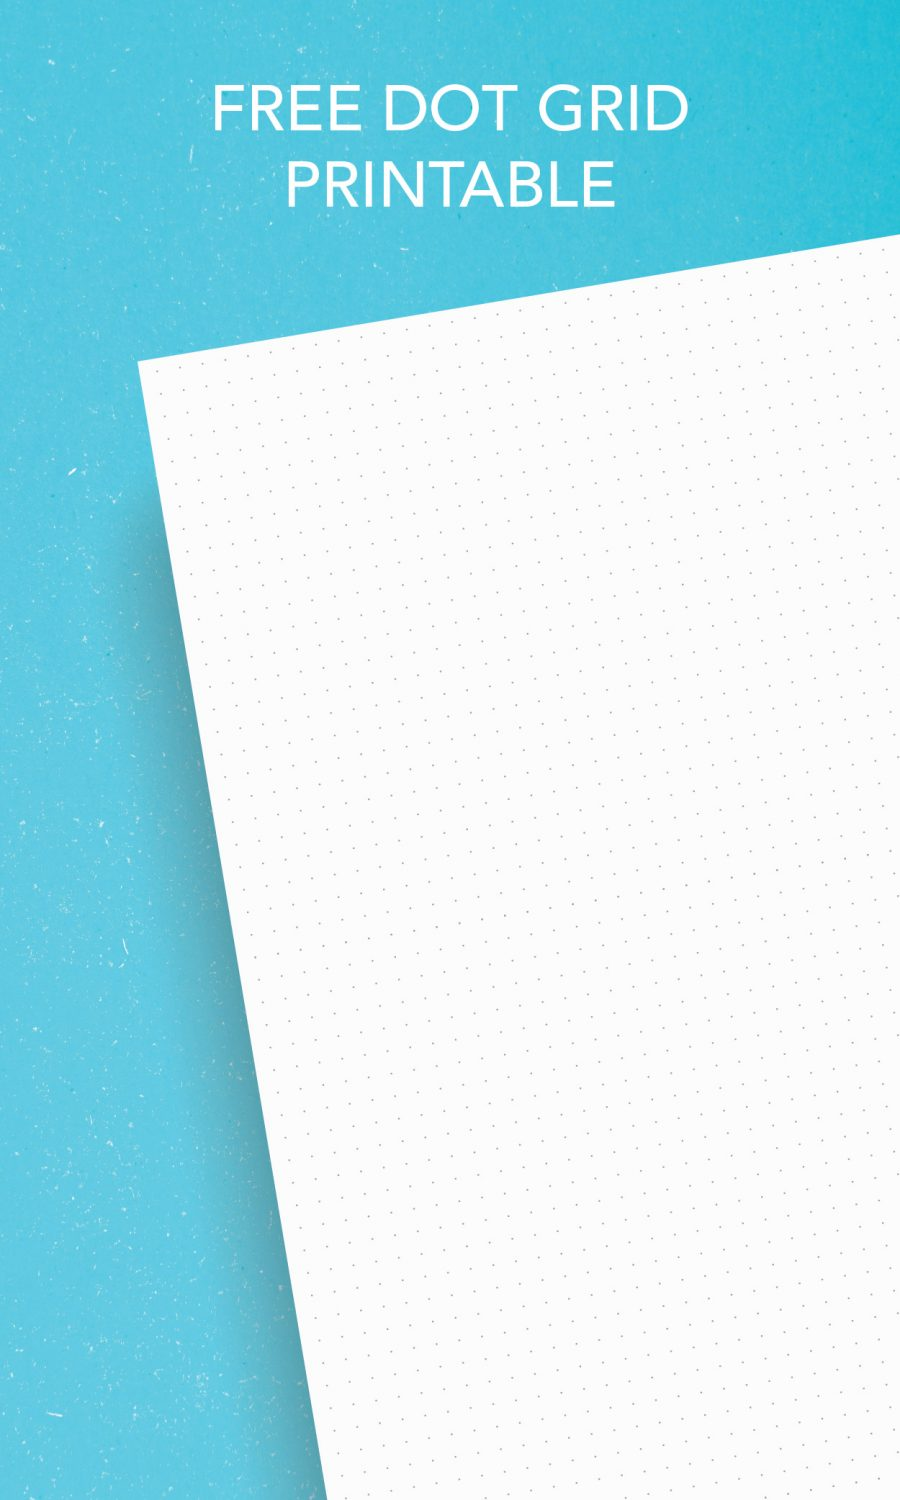 Free dot grid printable paper